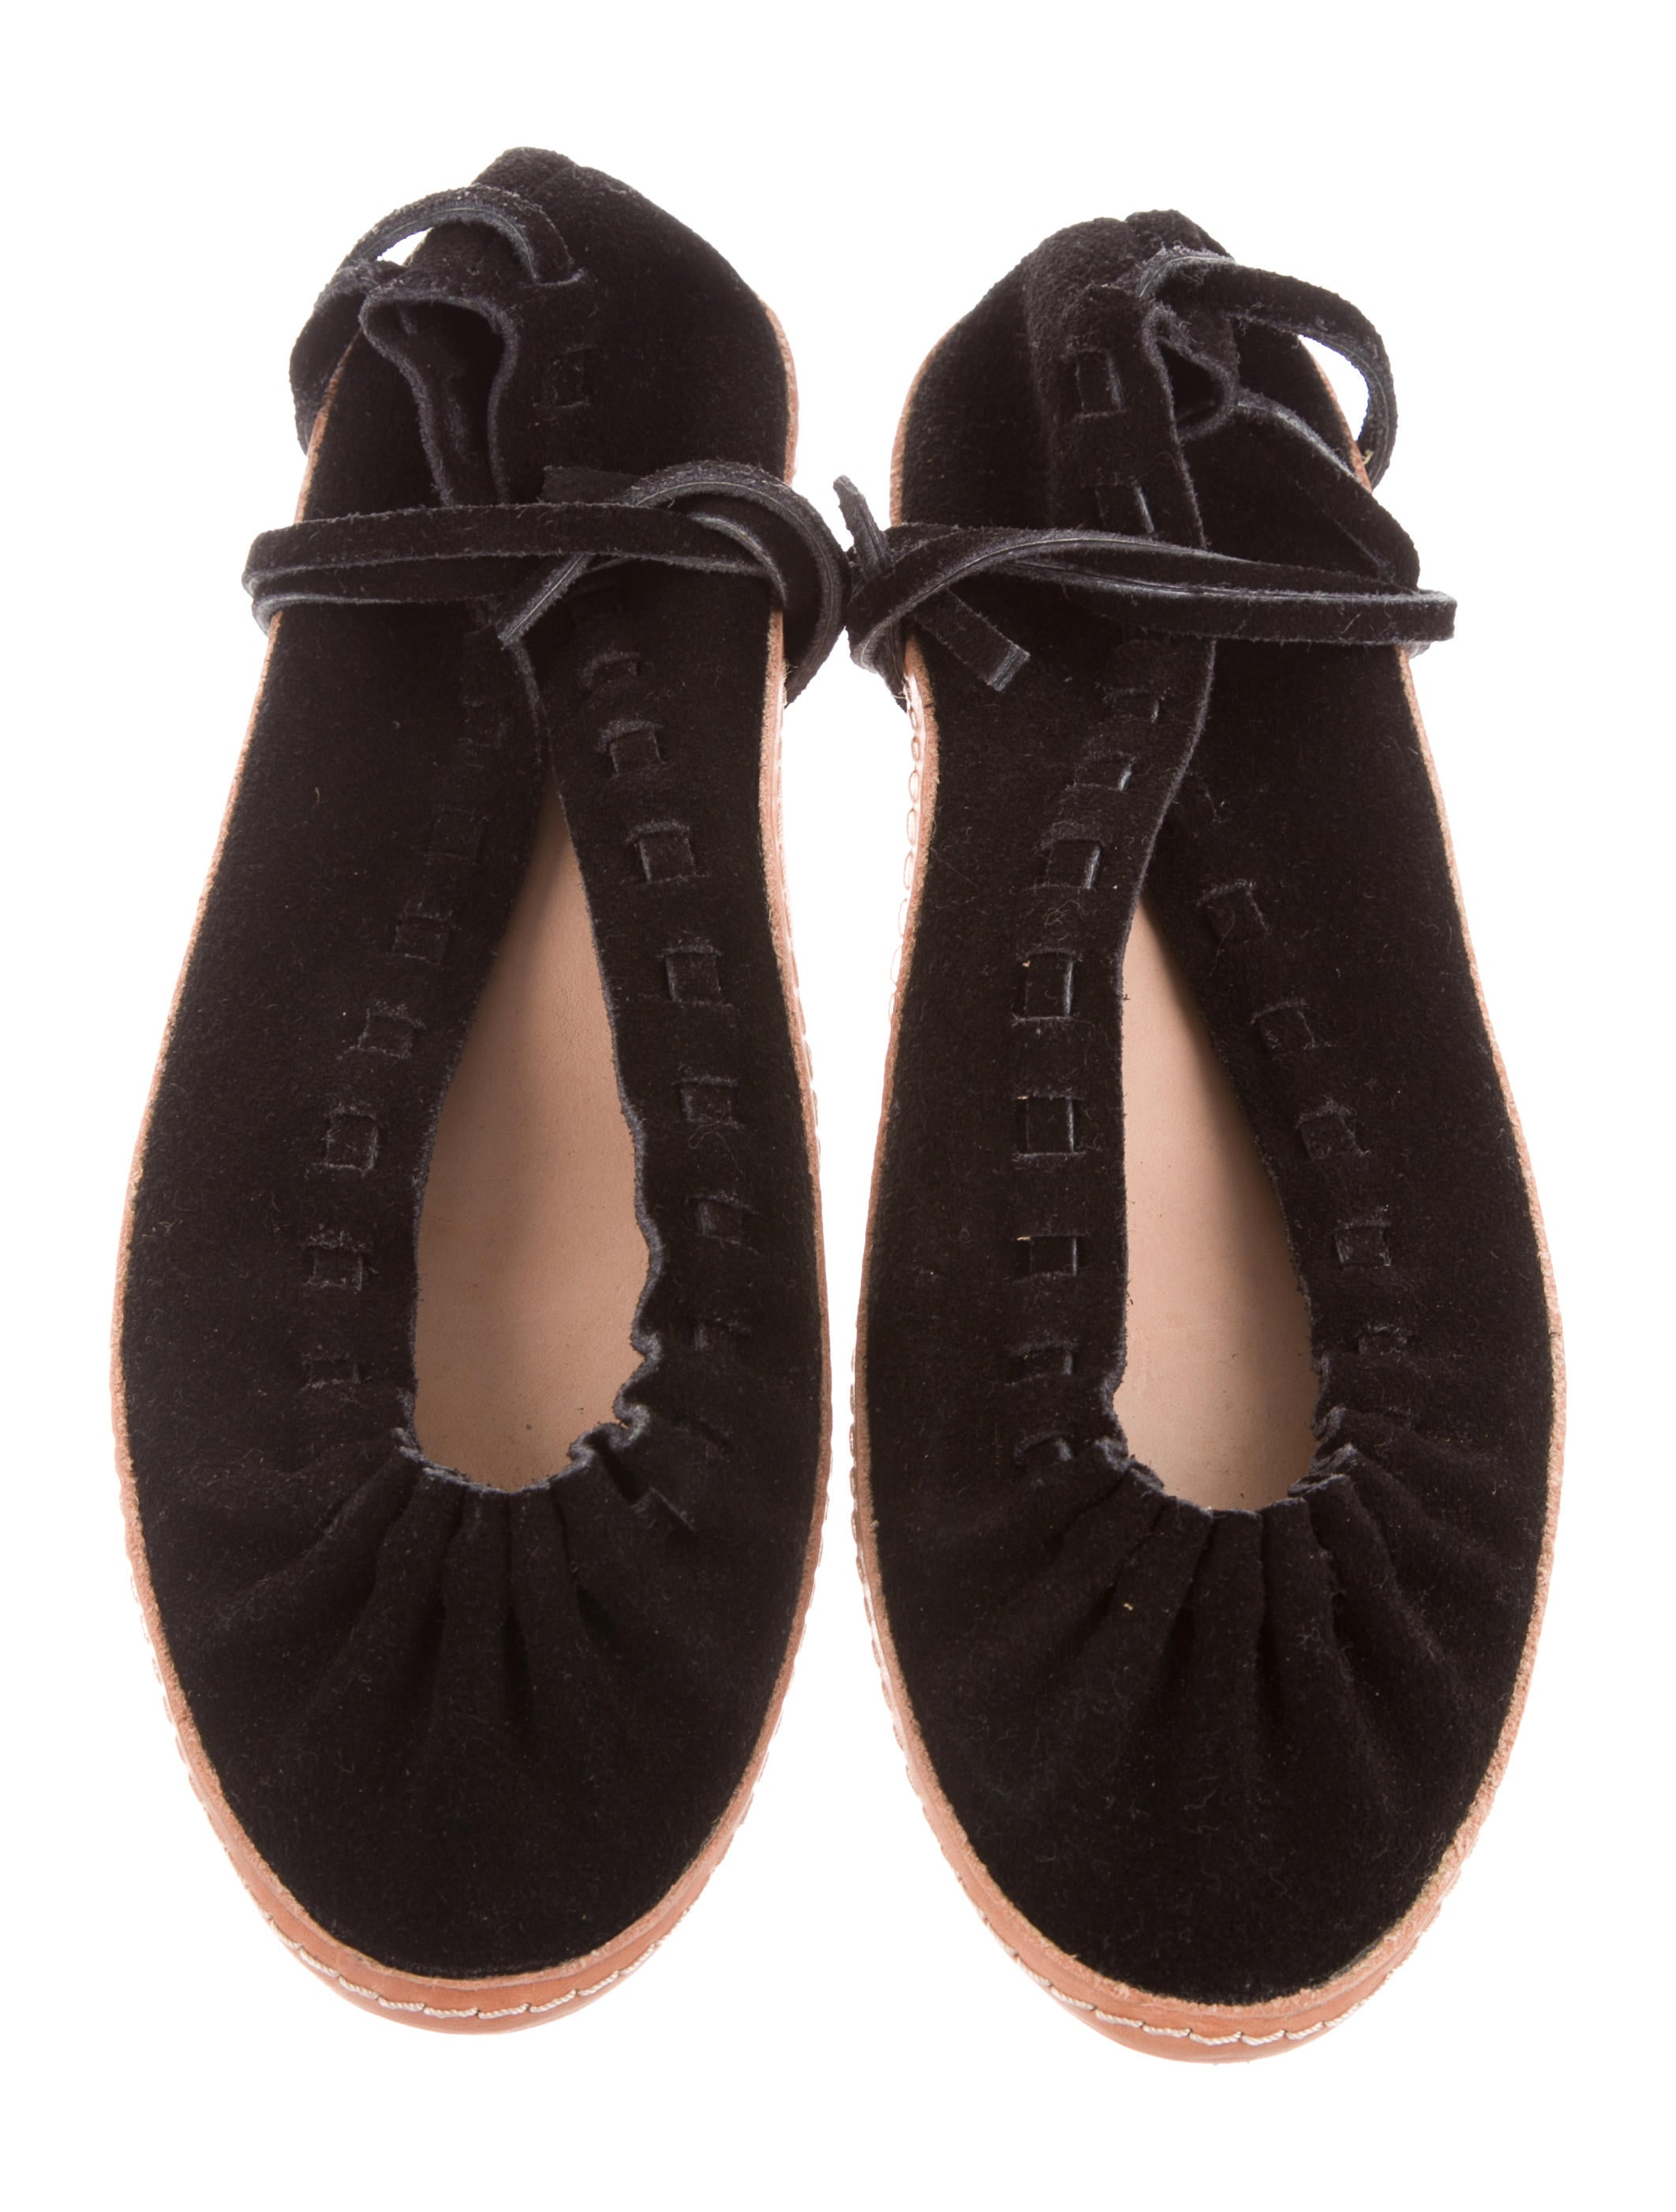 big discount cheap price sale really A Détacher Suede Lace-Up Flats browse sale new styles xCmOkp